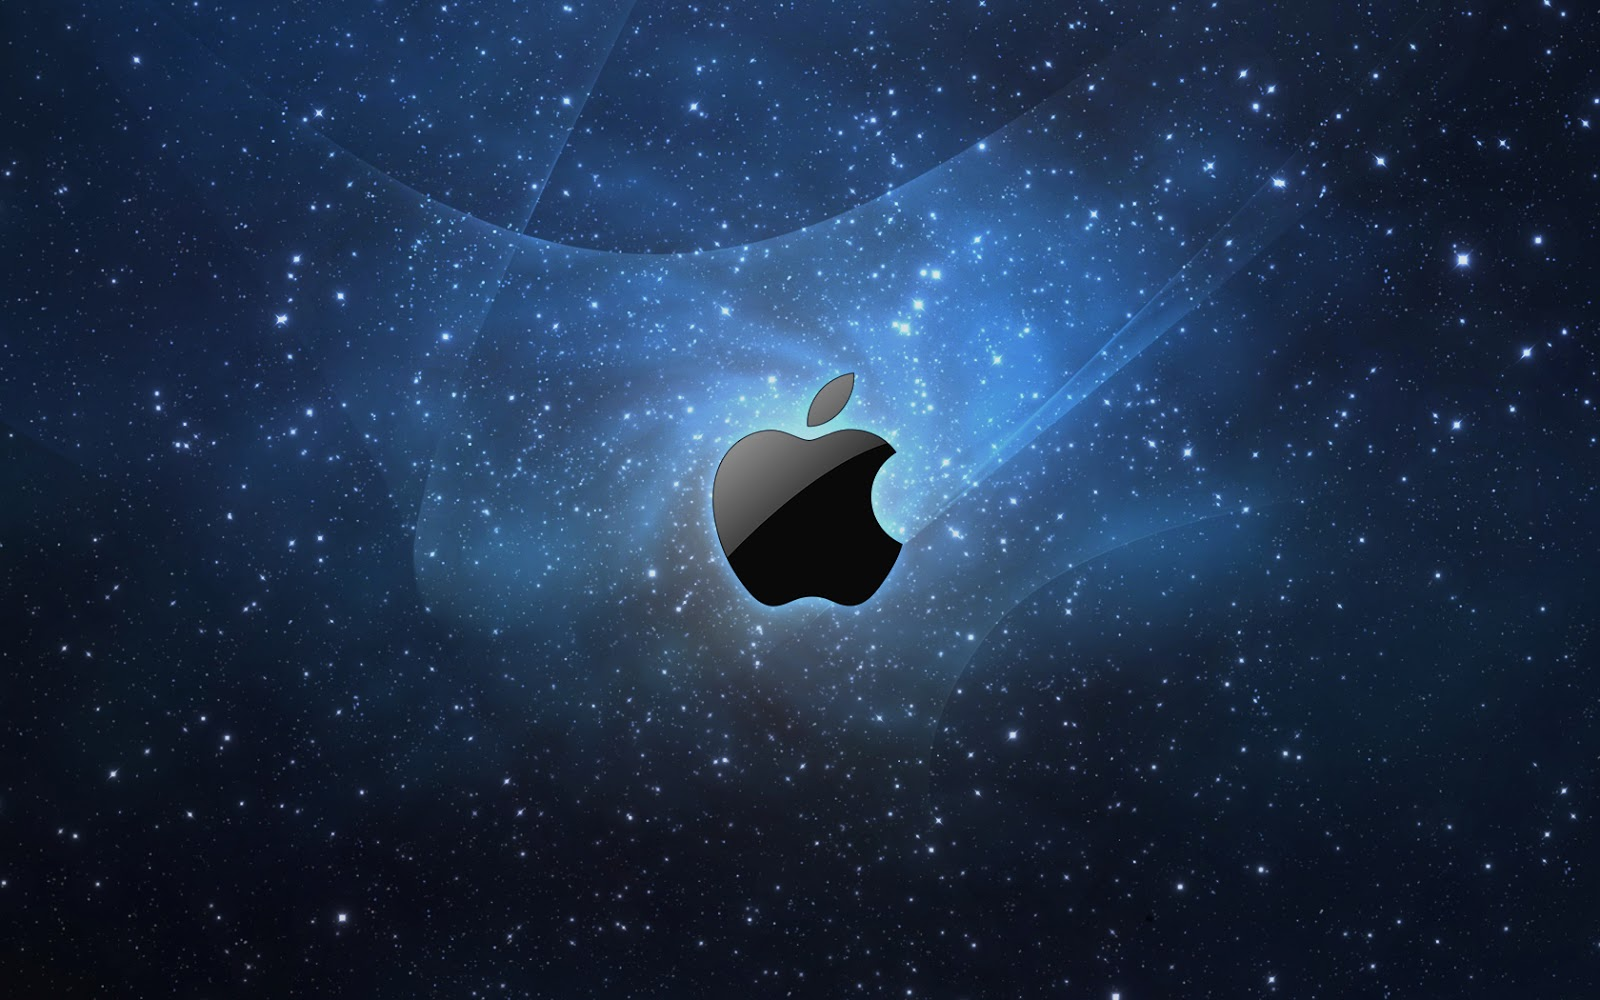 Cool Apple HD Wallpapers Cool Apple HD Wallpapers Check out the cool 1600x1000